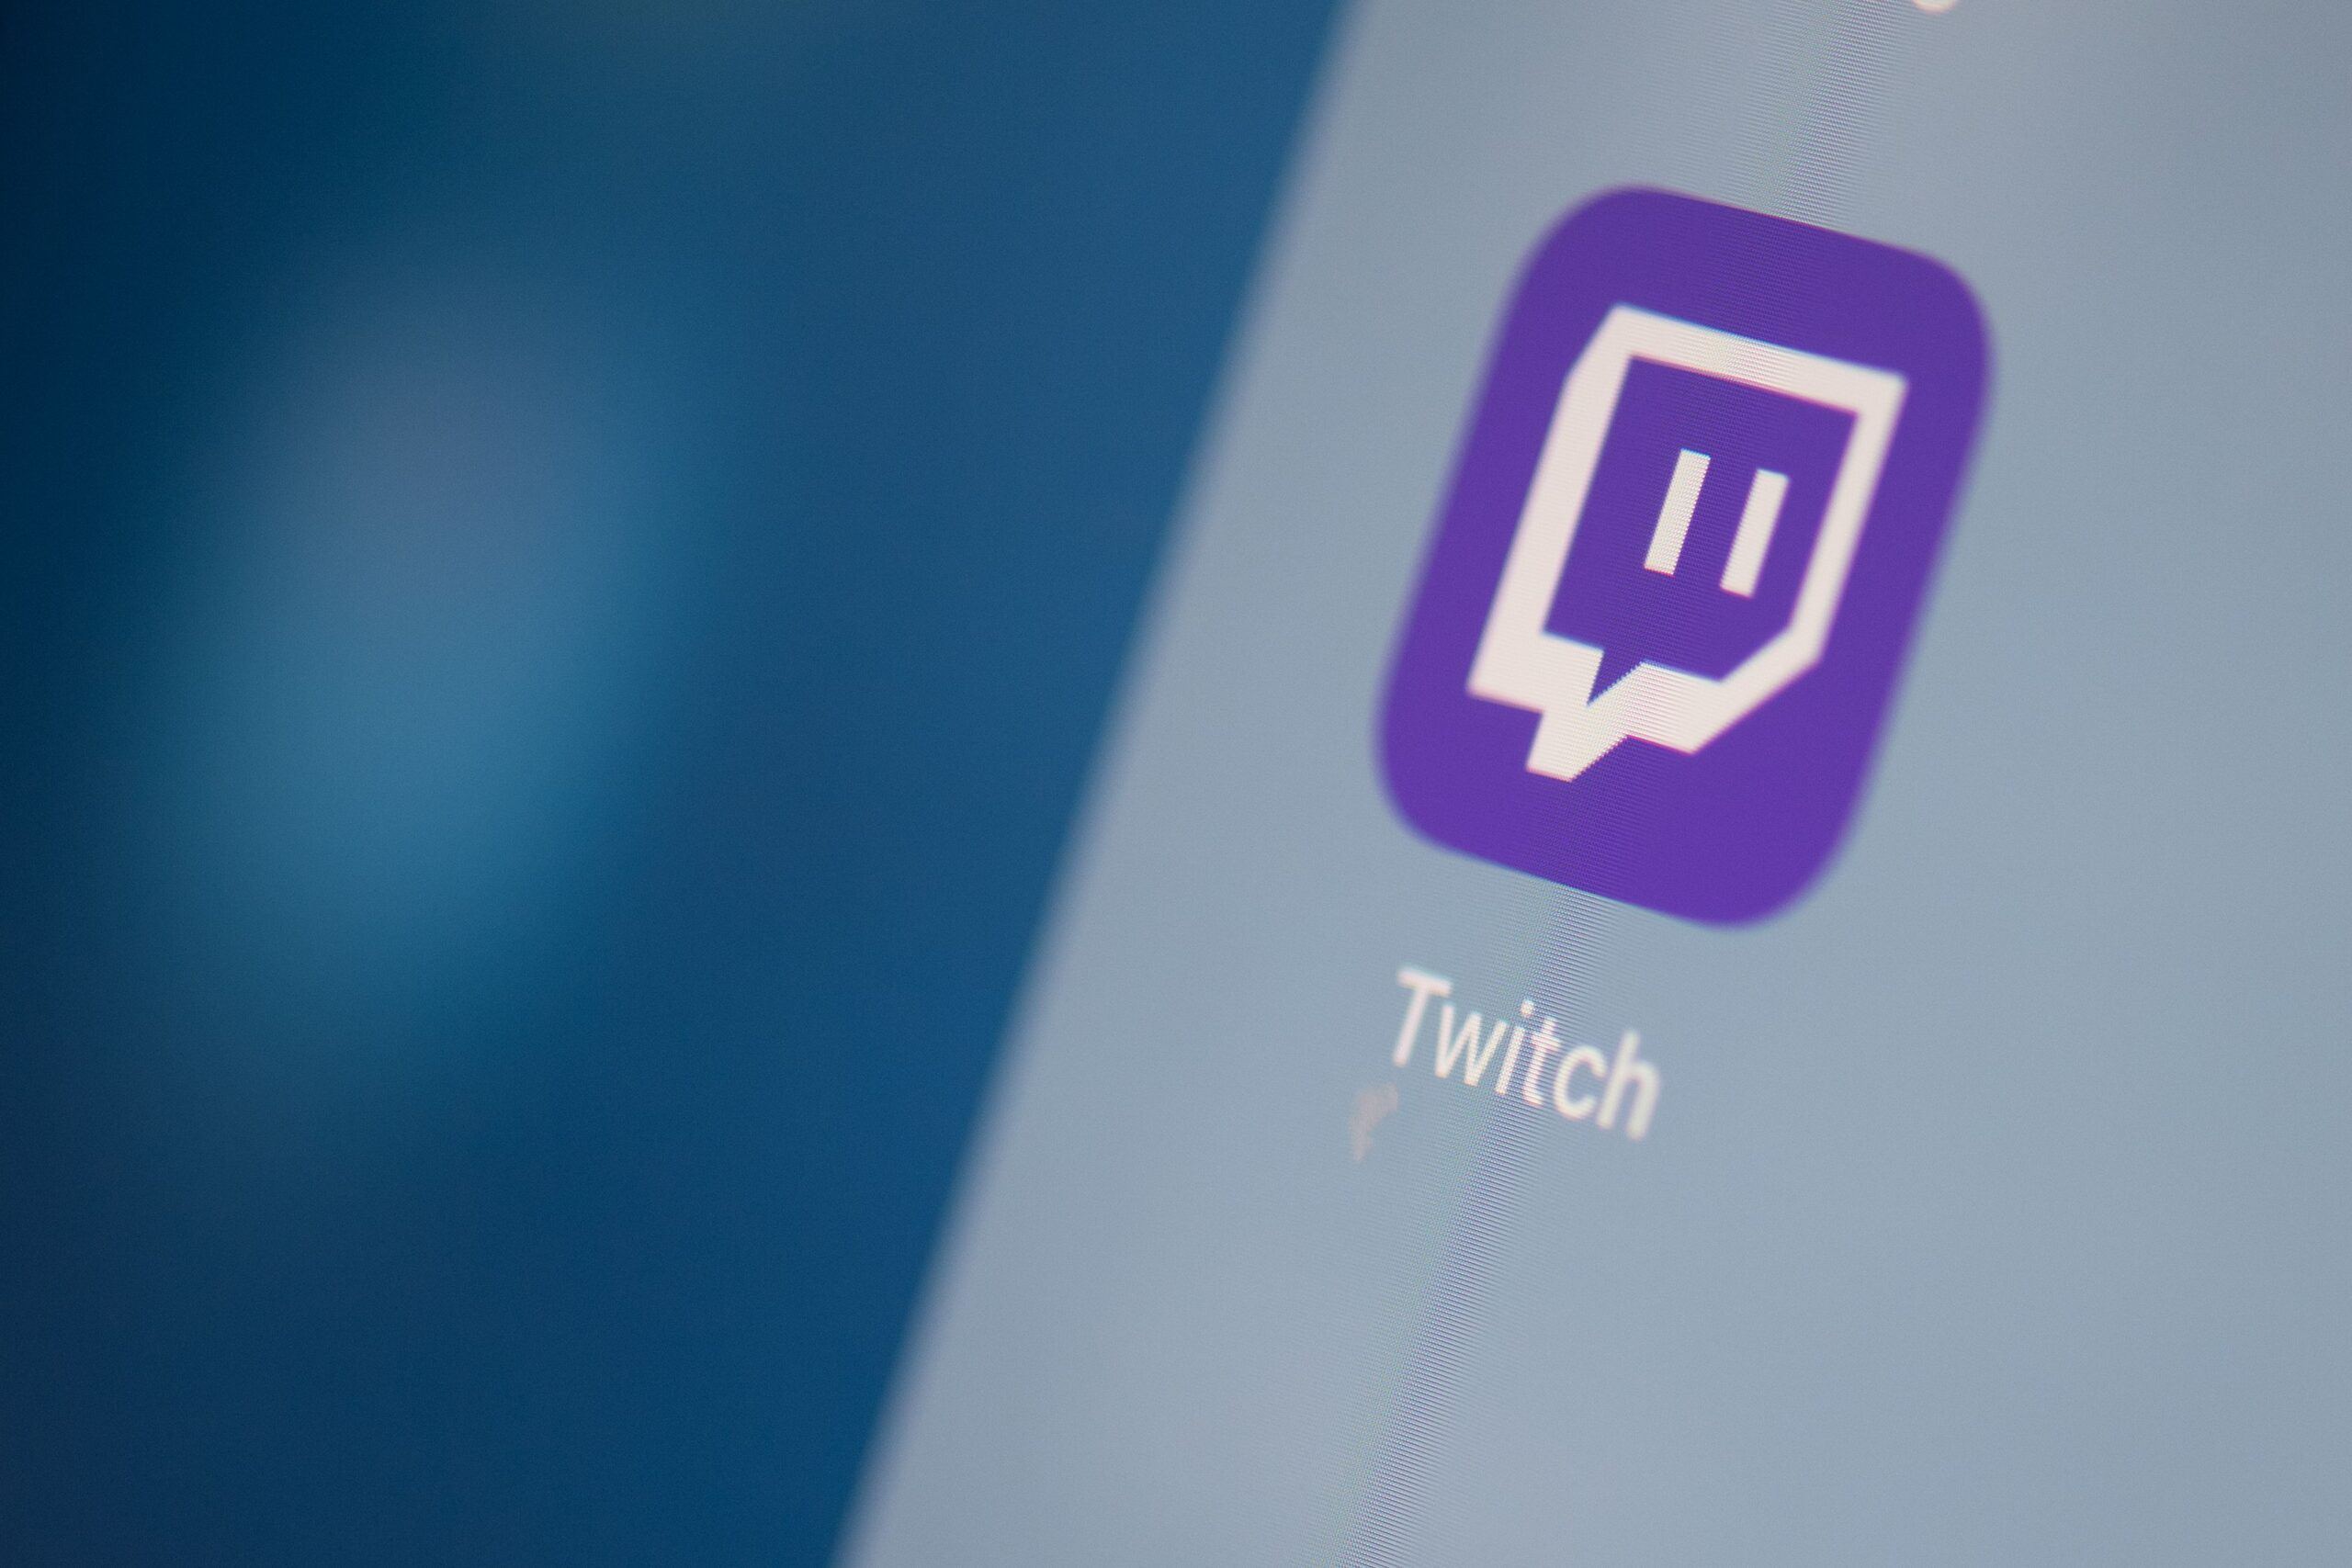 ADL: Twitch, the gaming network, is most effective social platform at curbing Holocaust denial